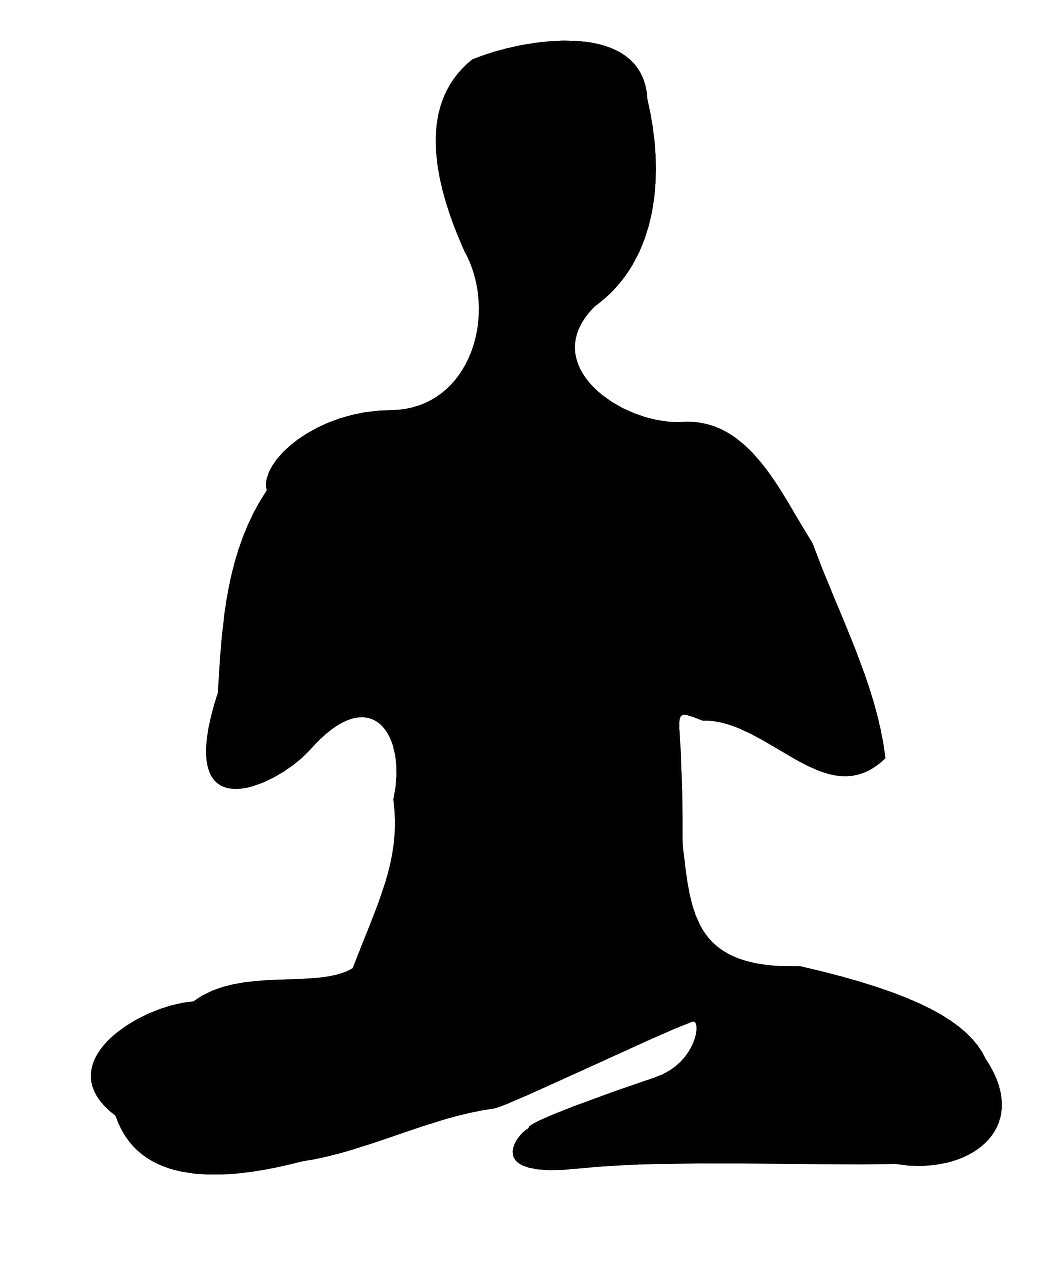 Meditation silhouette at getdrawings. Elvis clipart sillouette